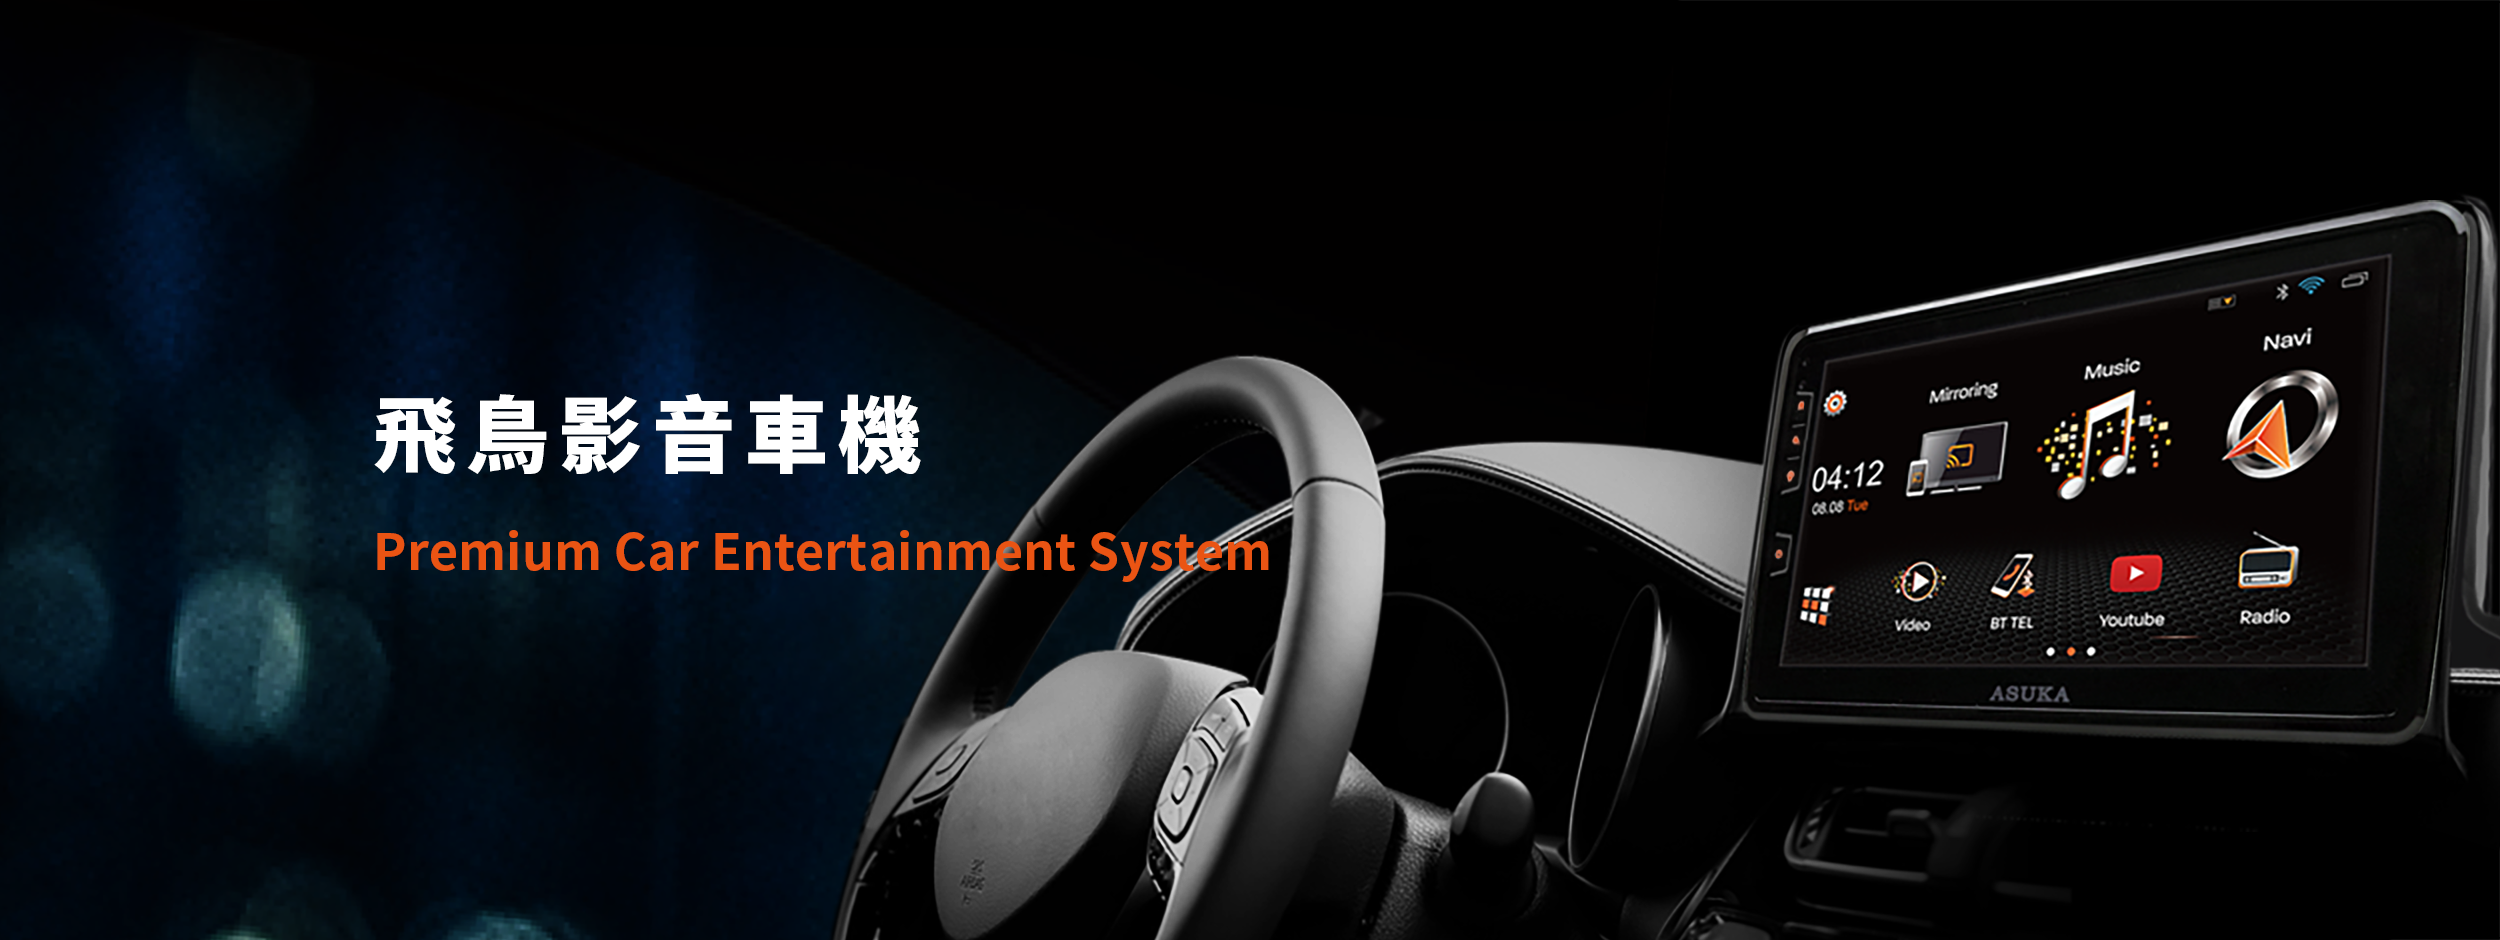 ASUKA Premium Car Entertainment System